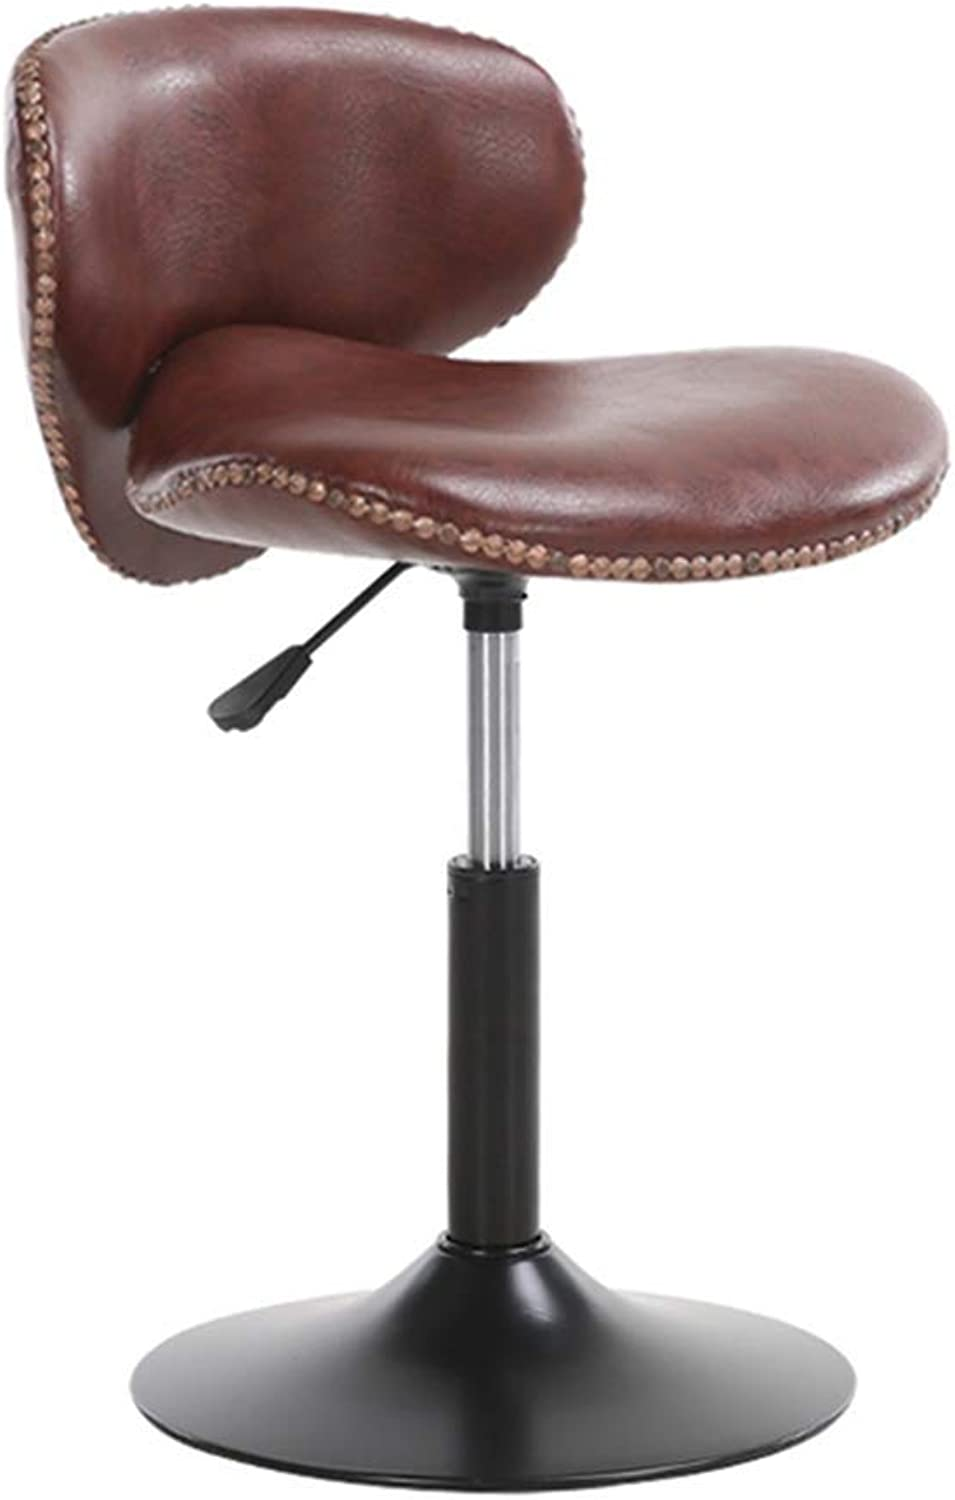 Chair Footstool with PU Seat Back redating Gas Lift Height Adjustable Restaurant Bar Cafe HENGXIAO (color   Brown, Size   42-57cm)